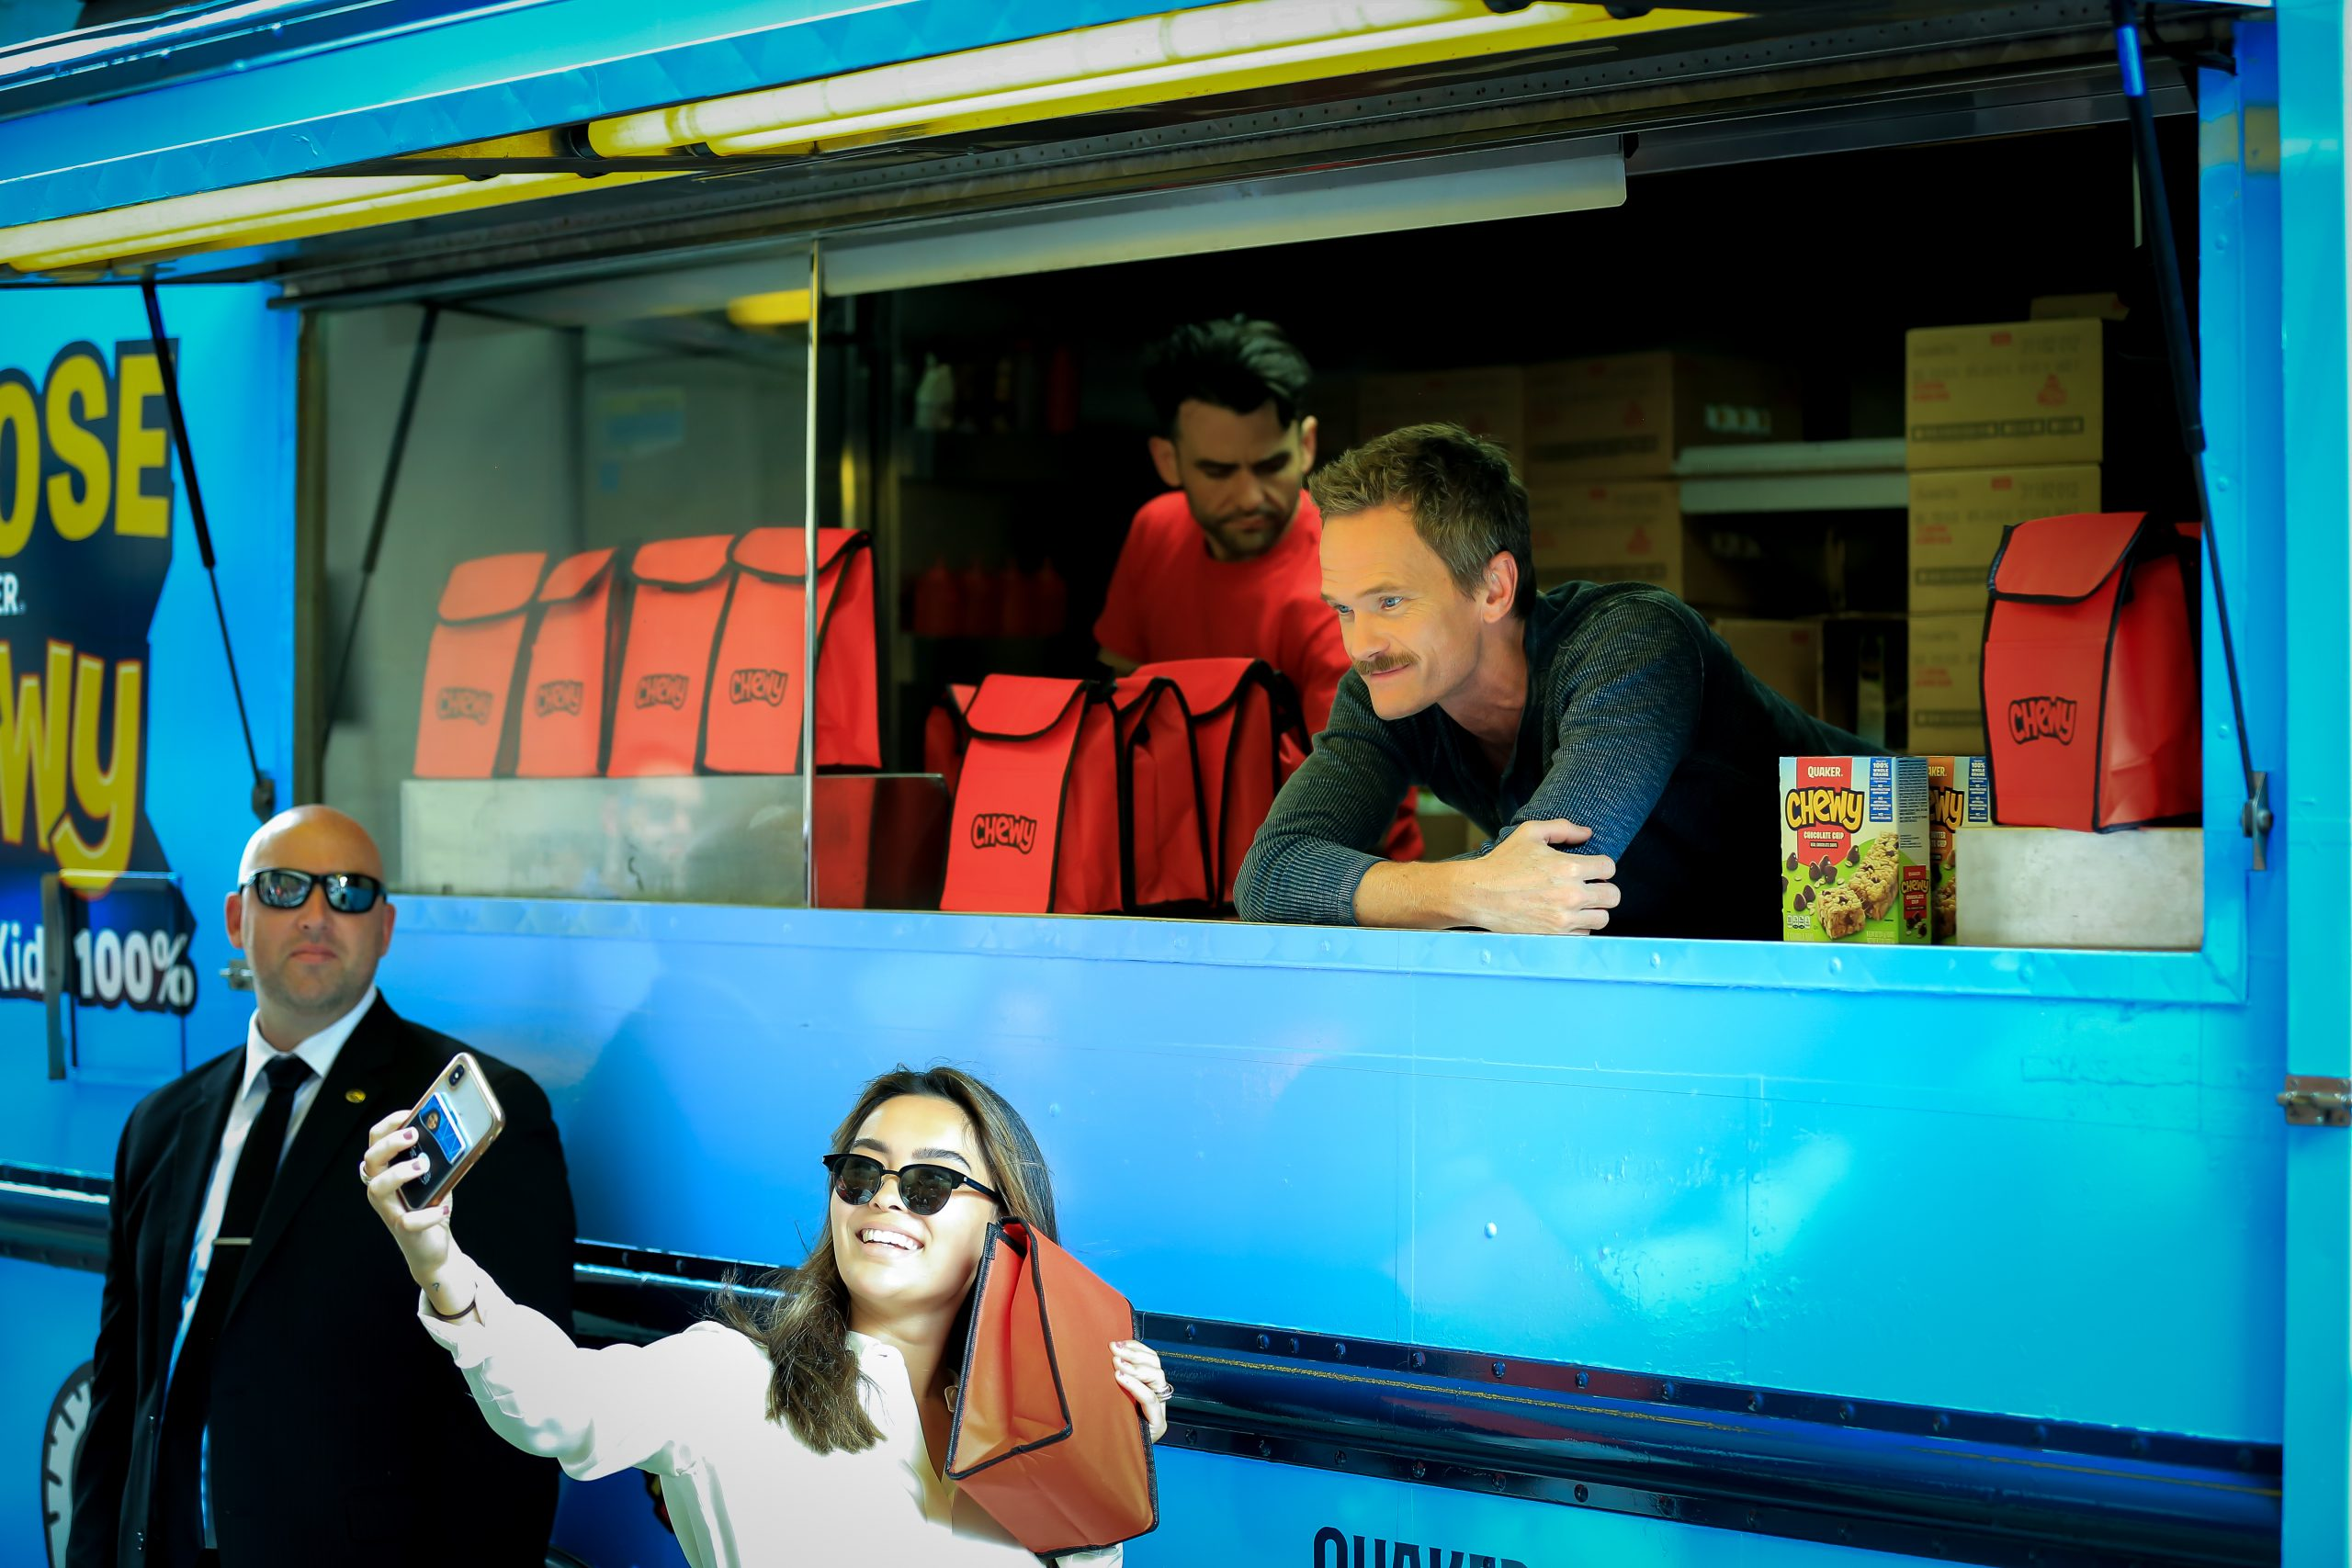 Neil Patrick Harris visits Chewy food truck NYC for adoptaclassroom promotion